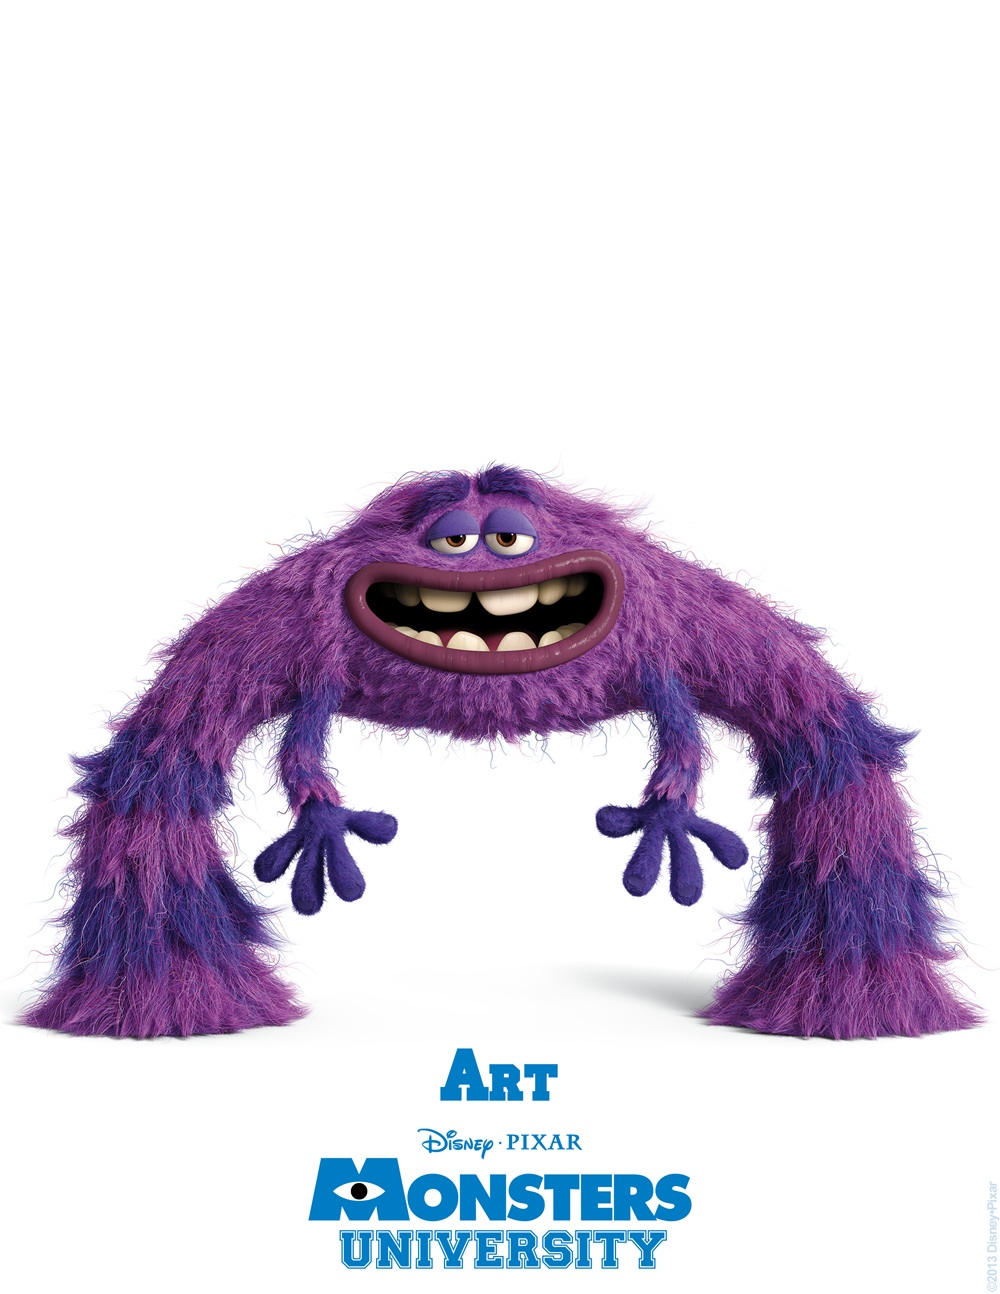 Monsters University - Art